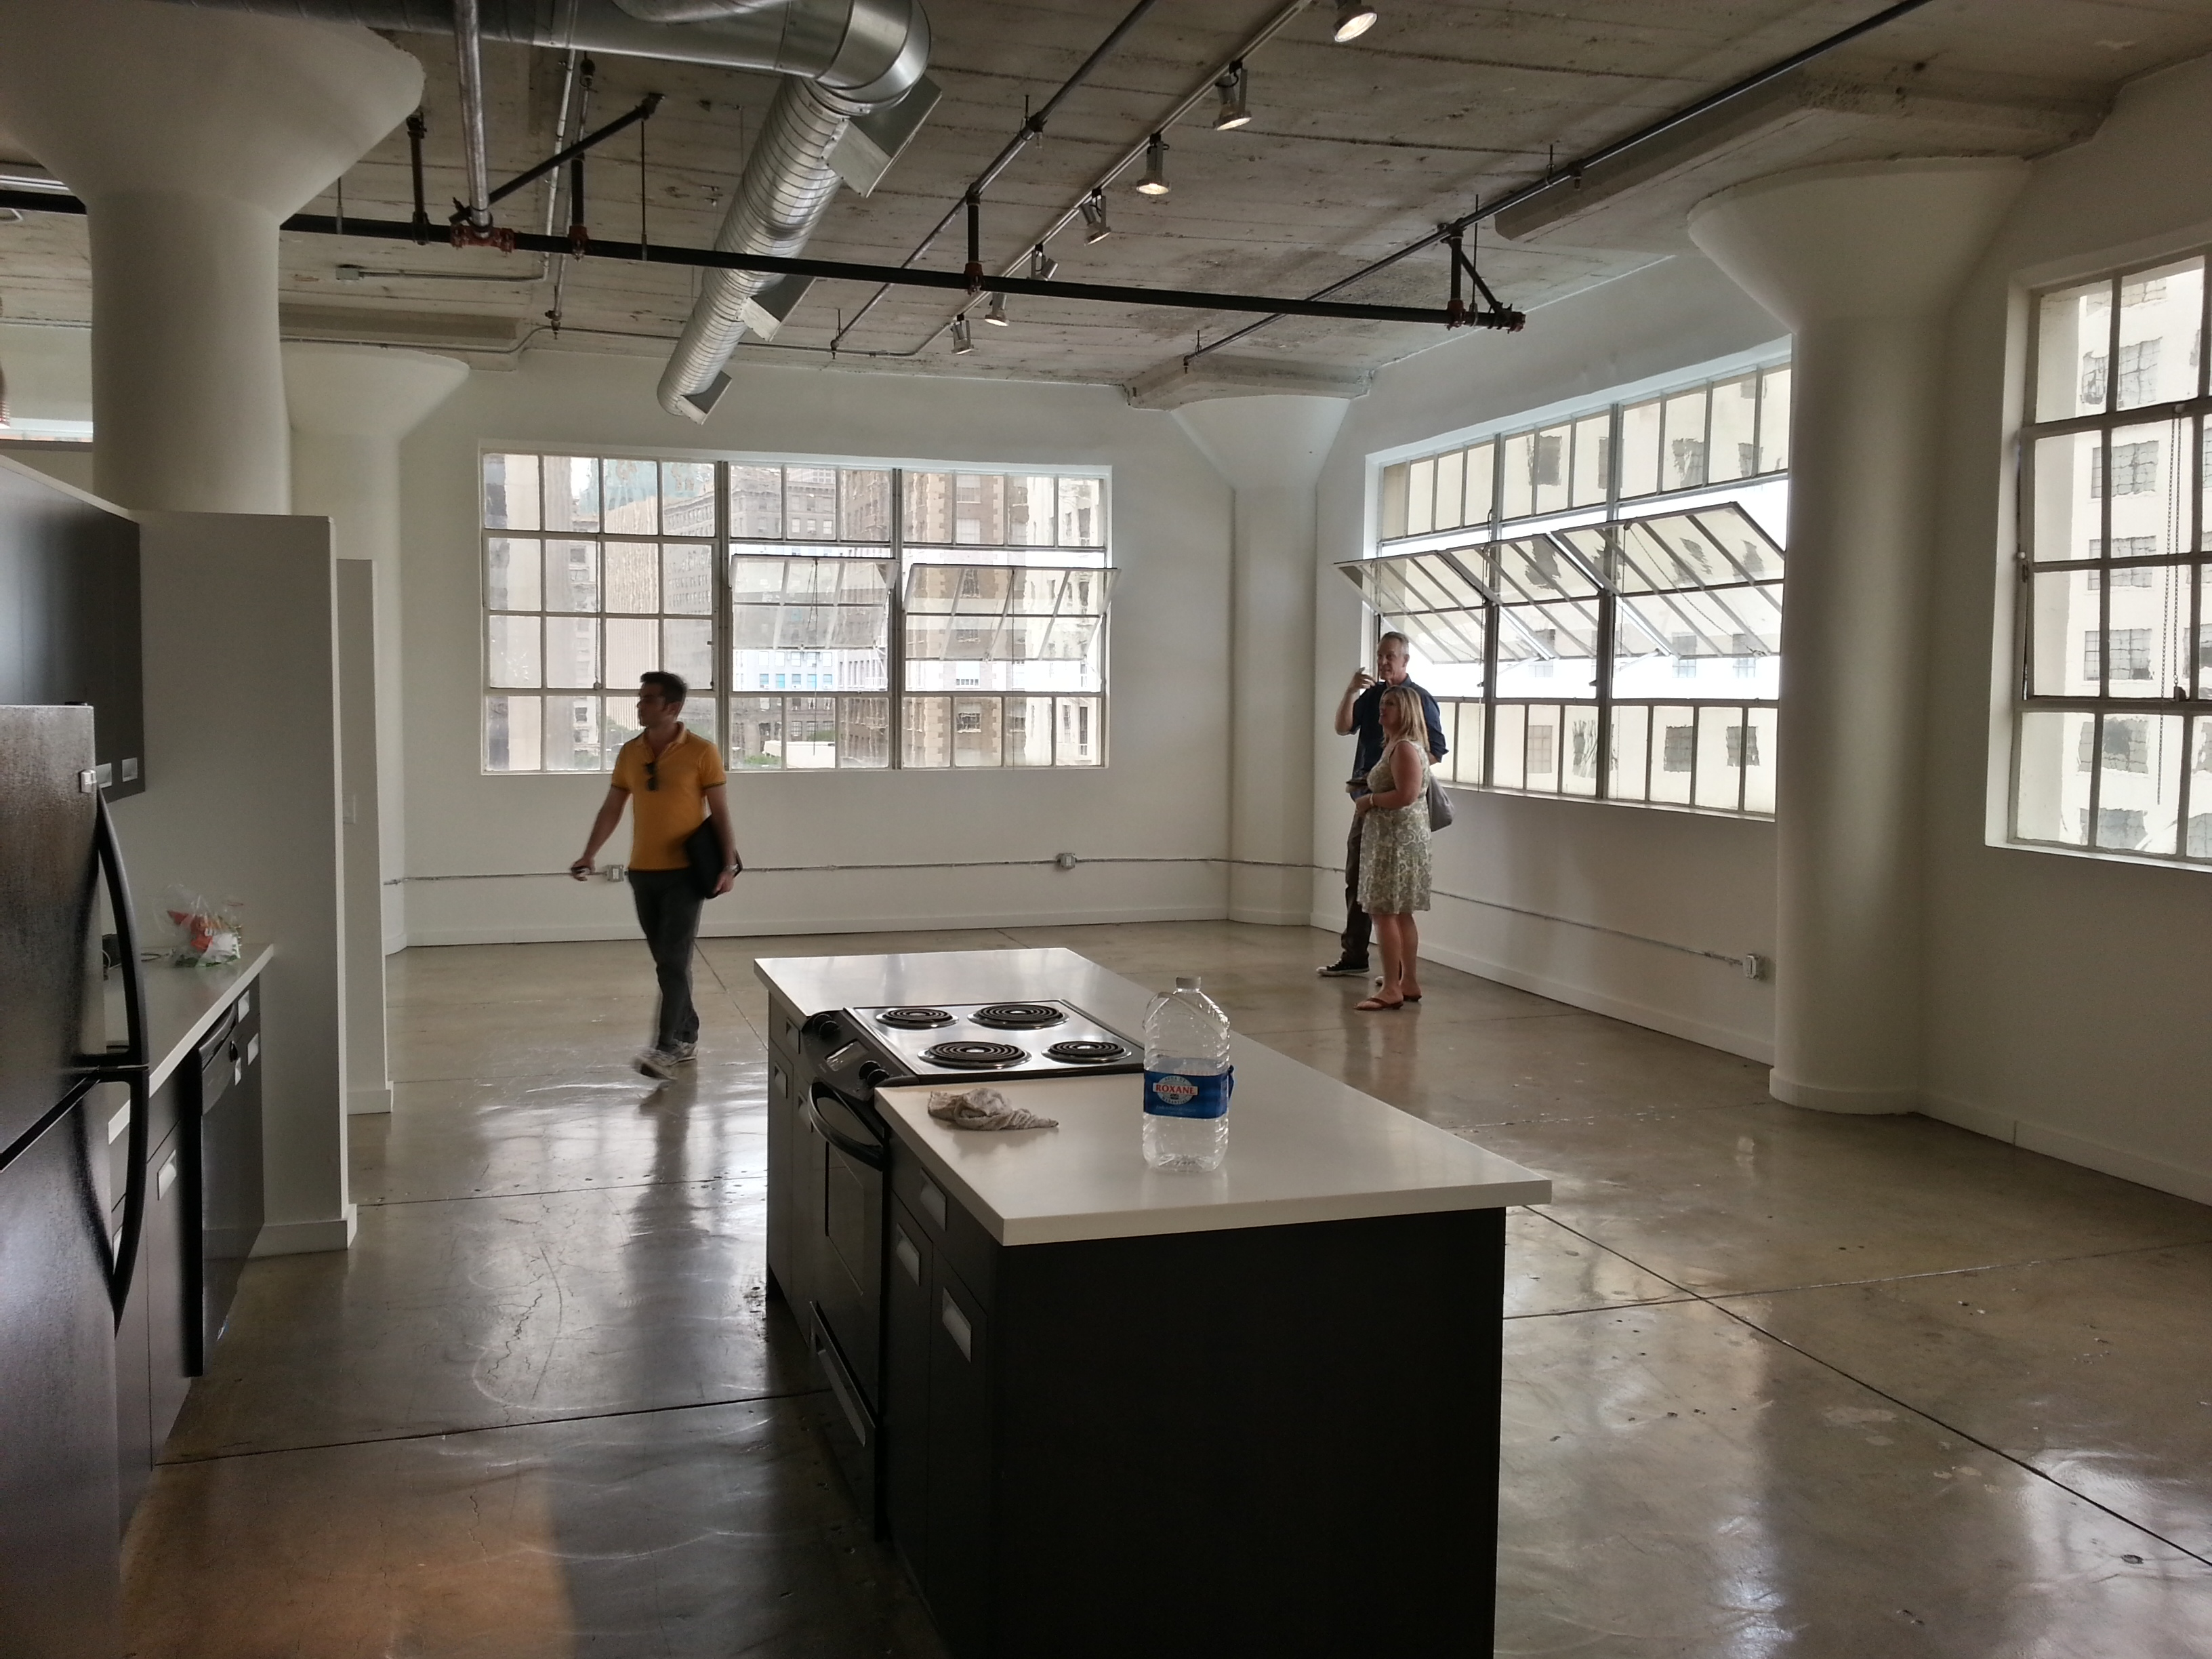 See Lofts Now U2013 Priority Appointment, Immediate Help From A Downtown  Leasing Specialist U2013 LA Loft Blog